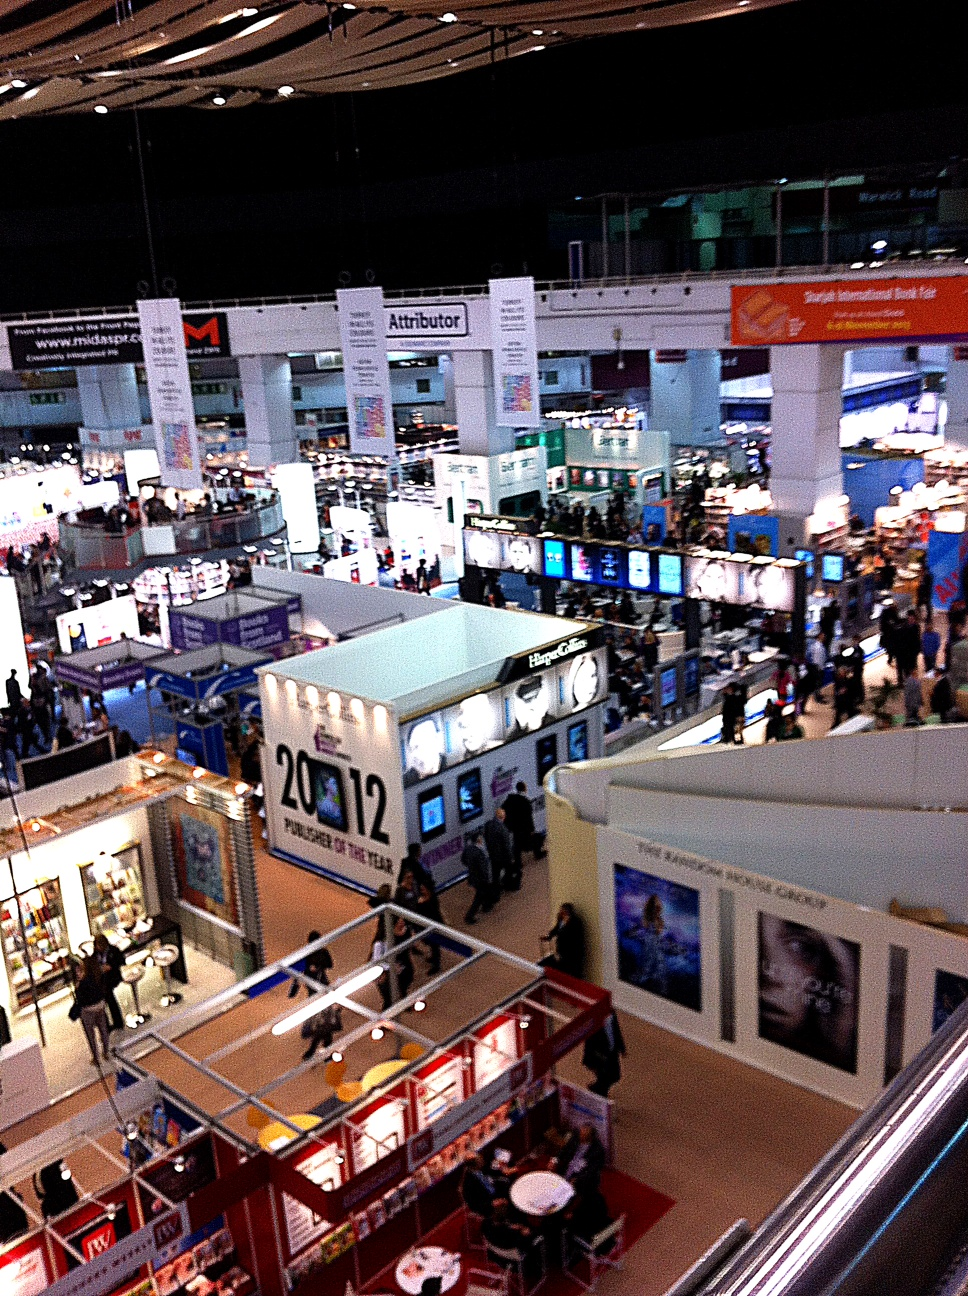 London Book Fair - ground floor